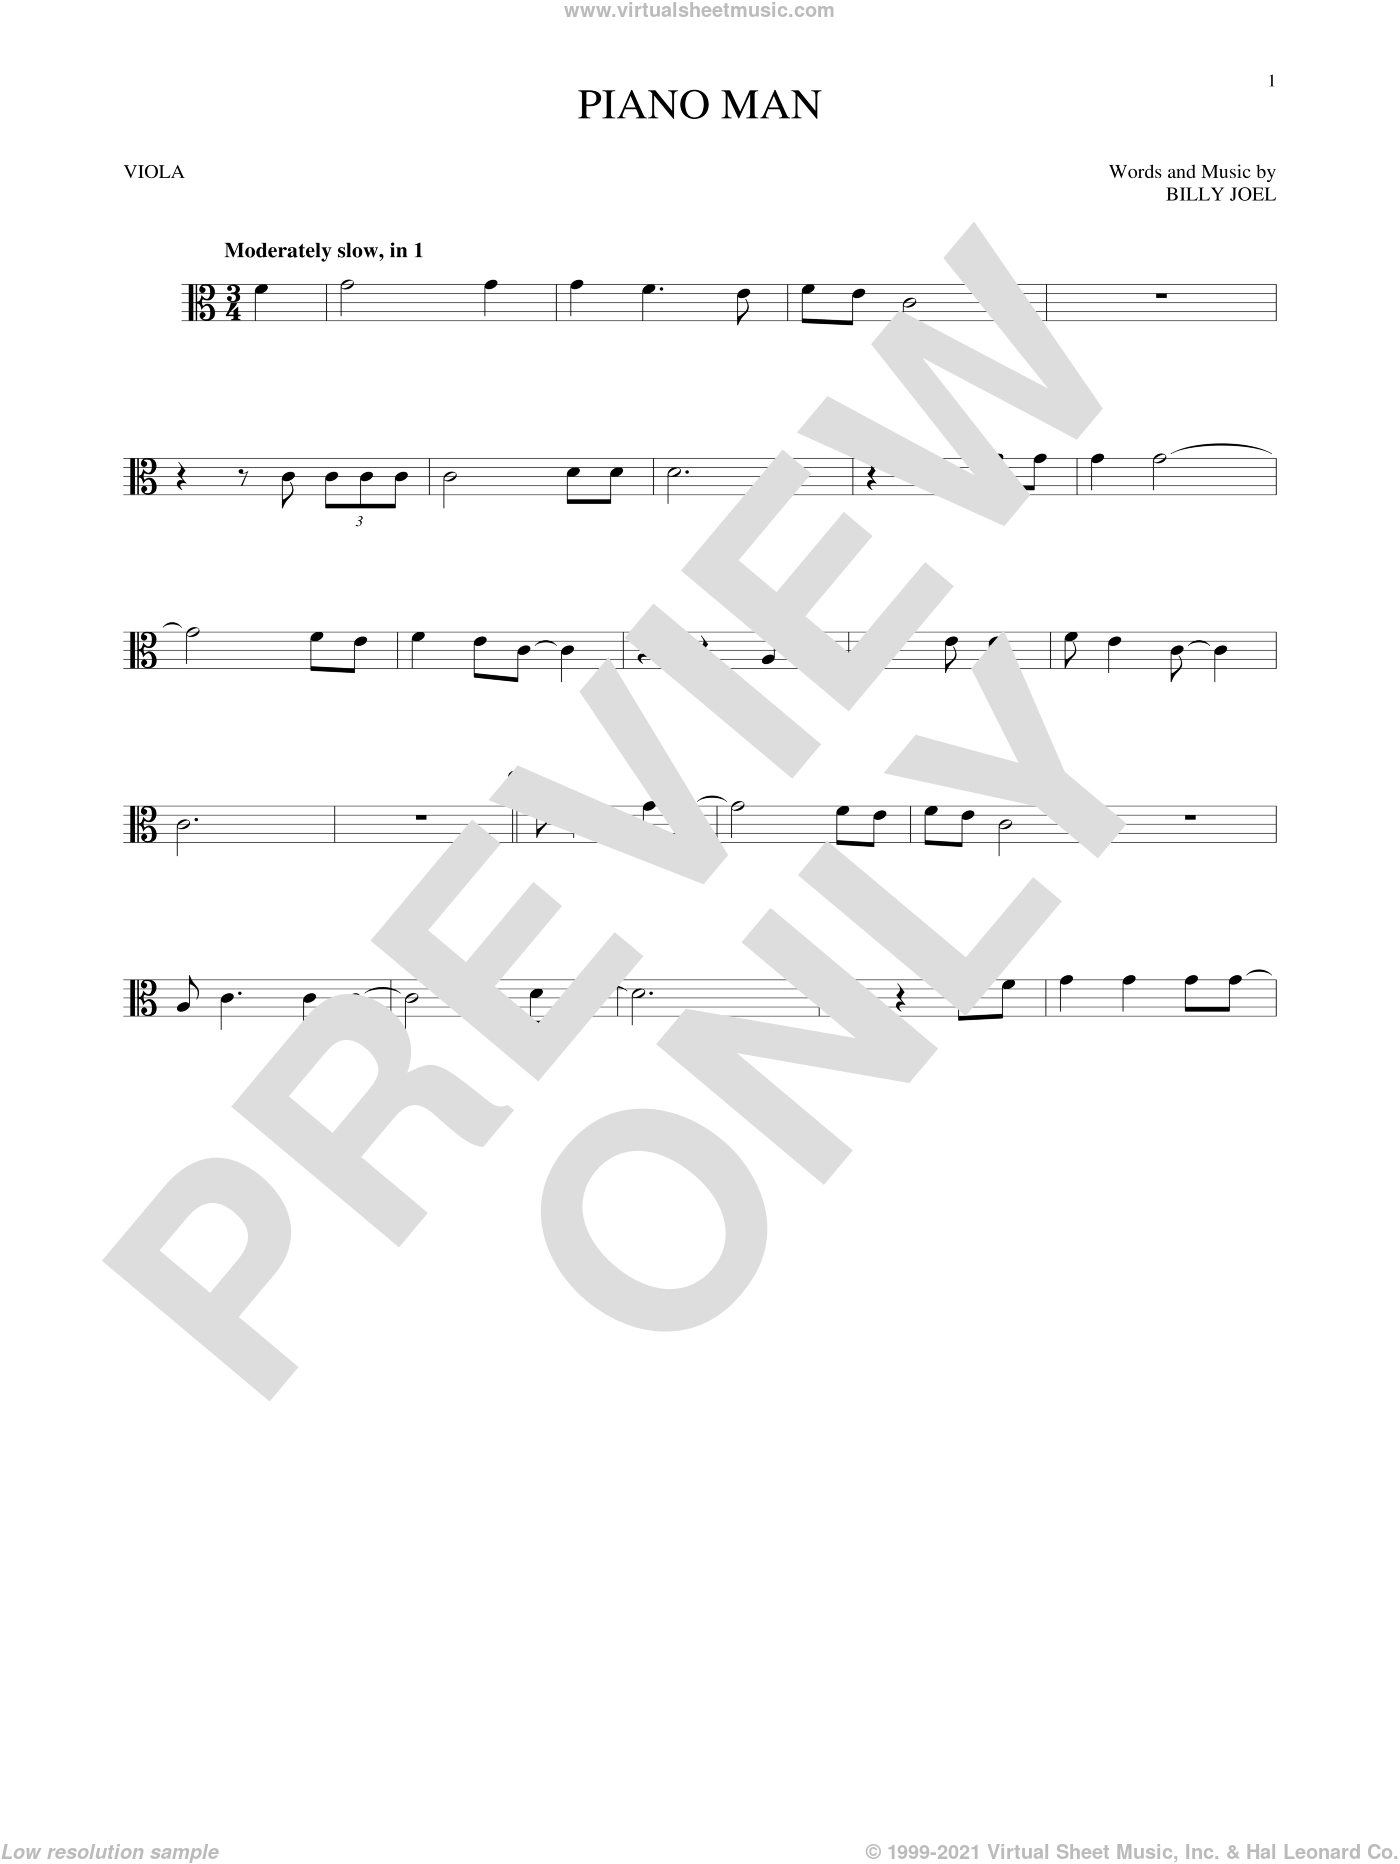 Piano Man sheet music for viola solo by Billy Joel, intermediate skill level